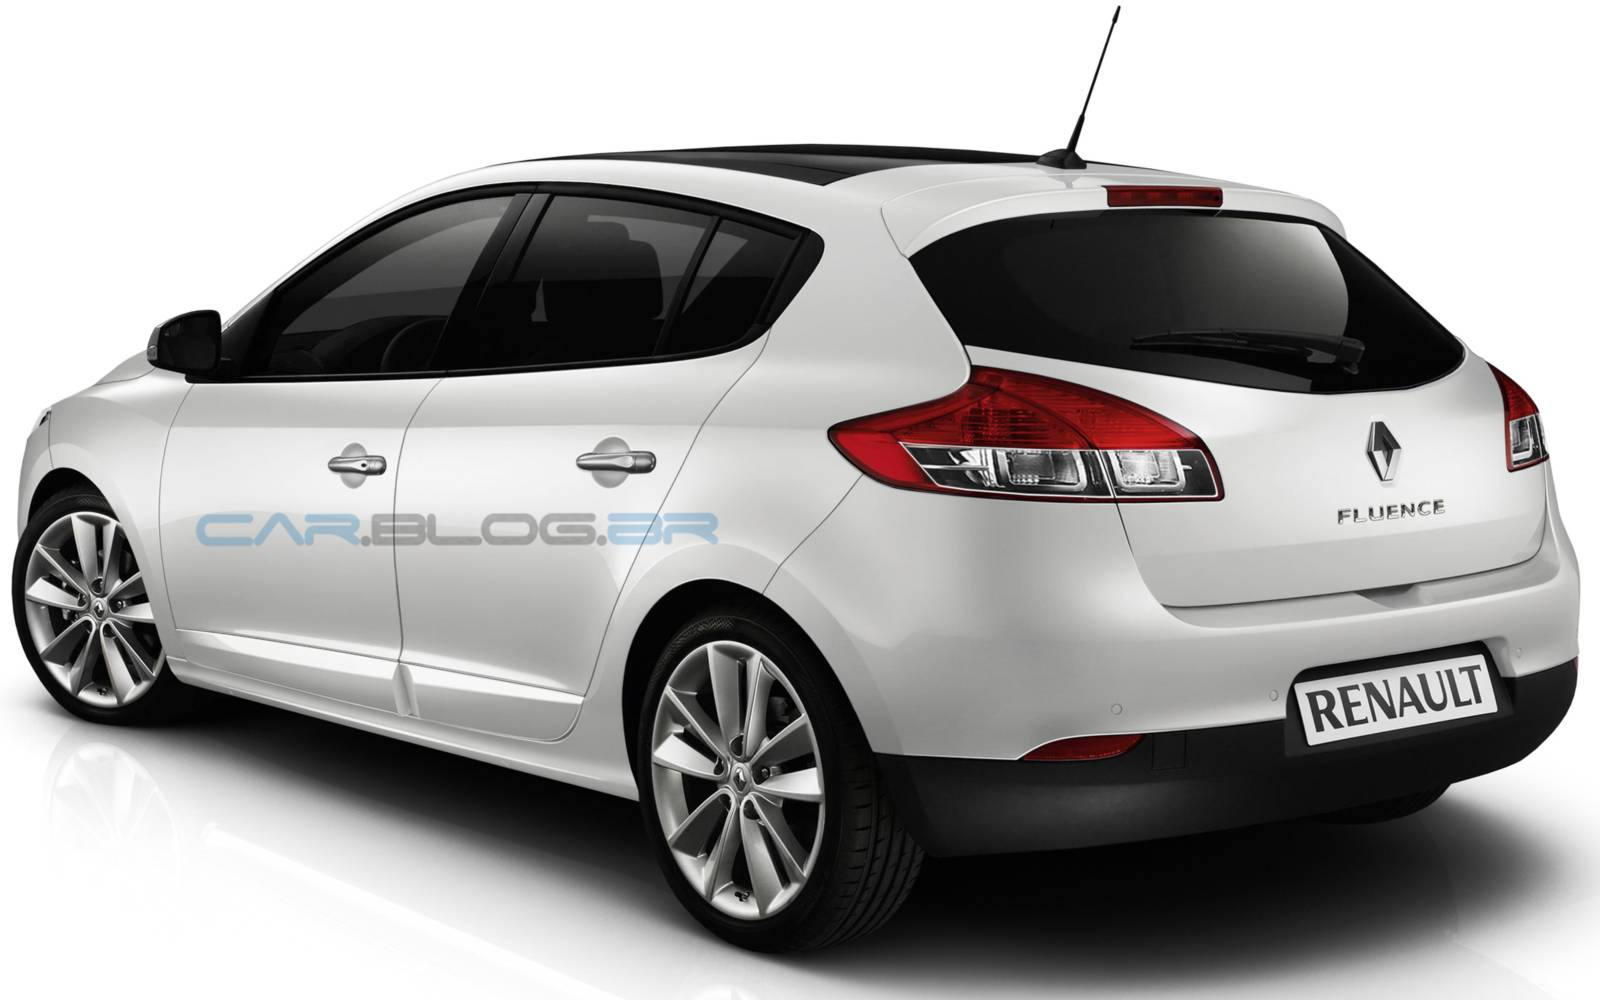 Novo Renault Fluence Hatch 2015